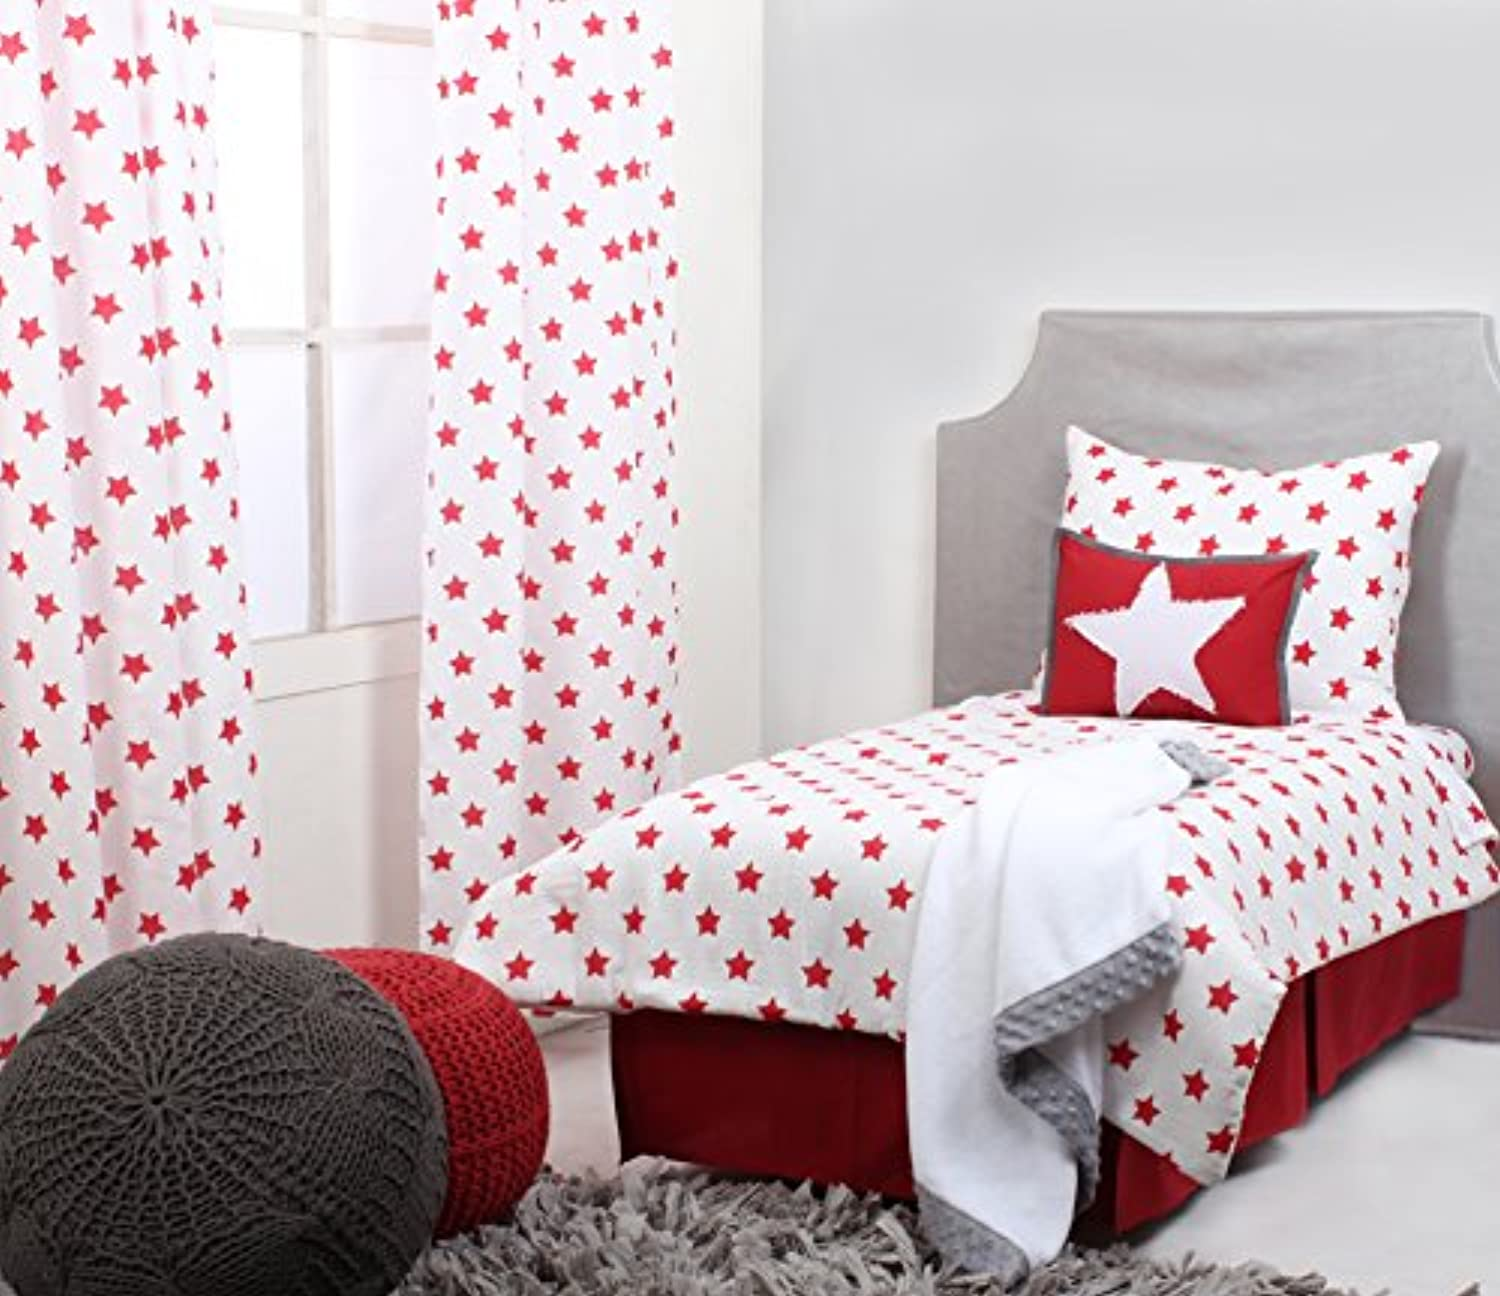 Bacati Stars Muslin 4 Piece Toddler Bedding Set, Red by Bacati